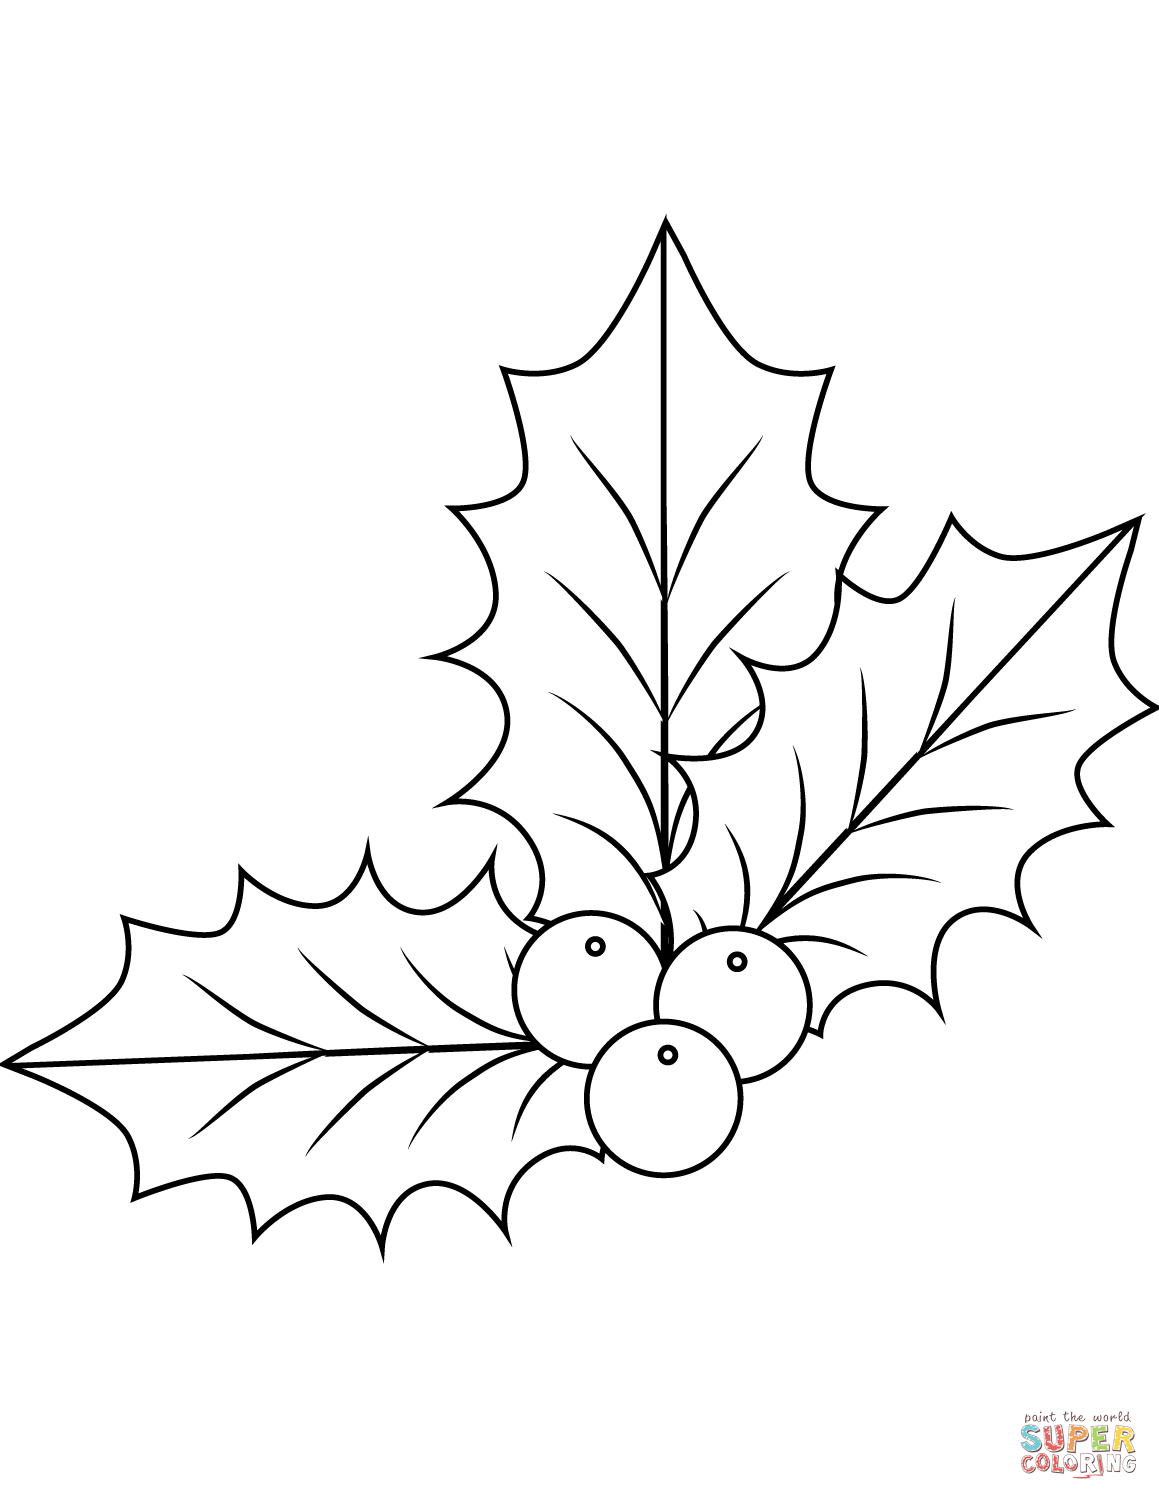 Christmas Coloring Pages Holly Leaves With Xmas Page Free Printable